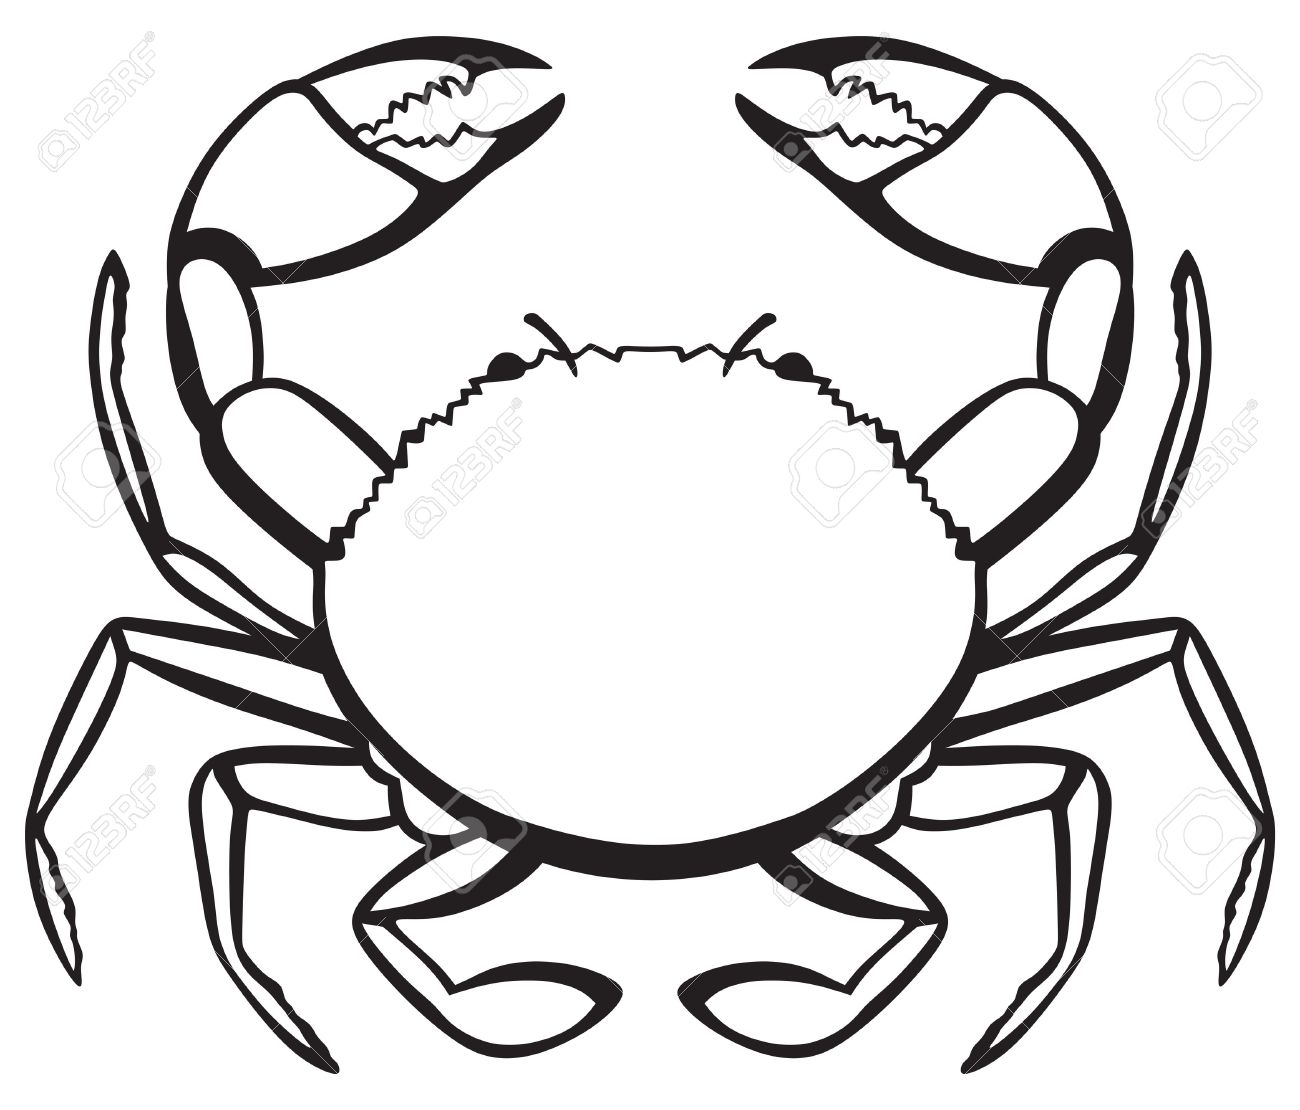 Crabs clipart drawn. Crab line drawing free